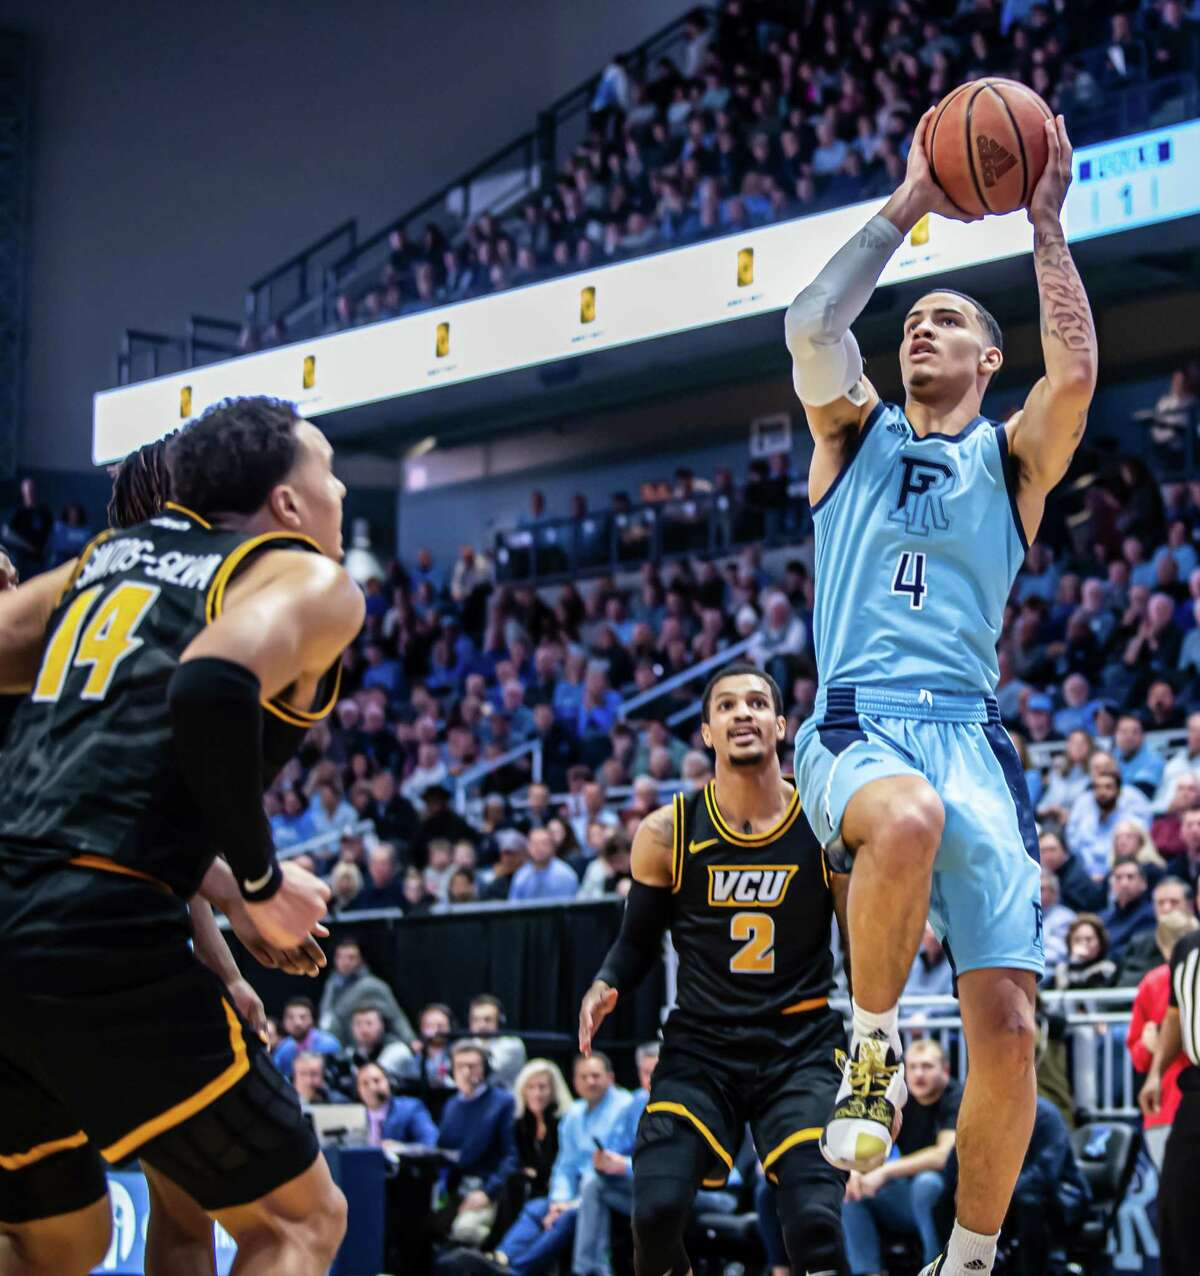 Tyrese Martin was recruited by Dan Hurley to go to URI, and then again to transfer to UConn.